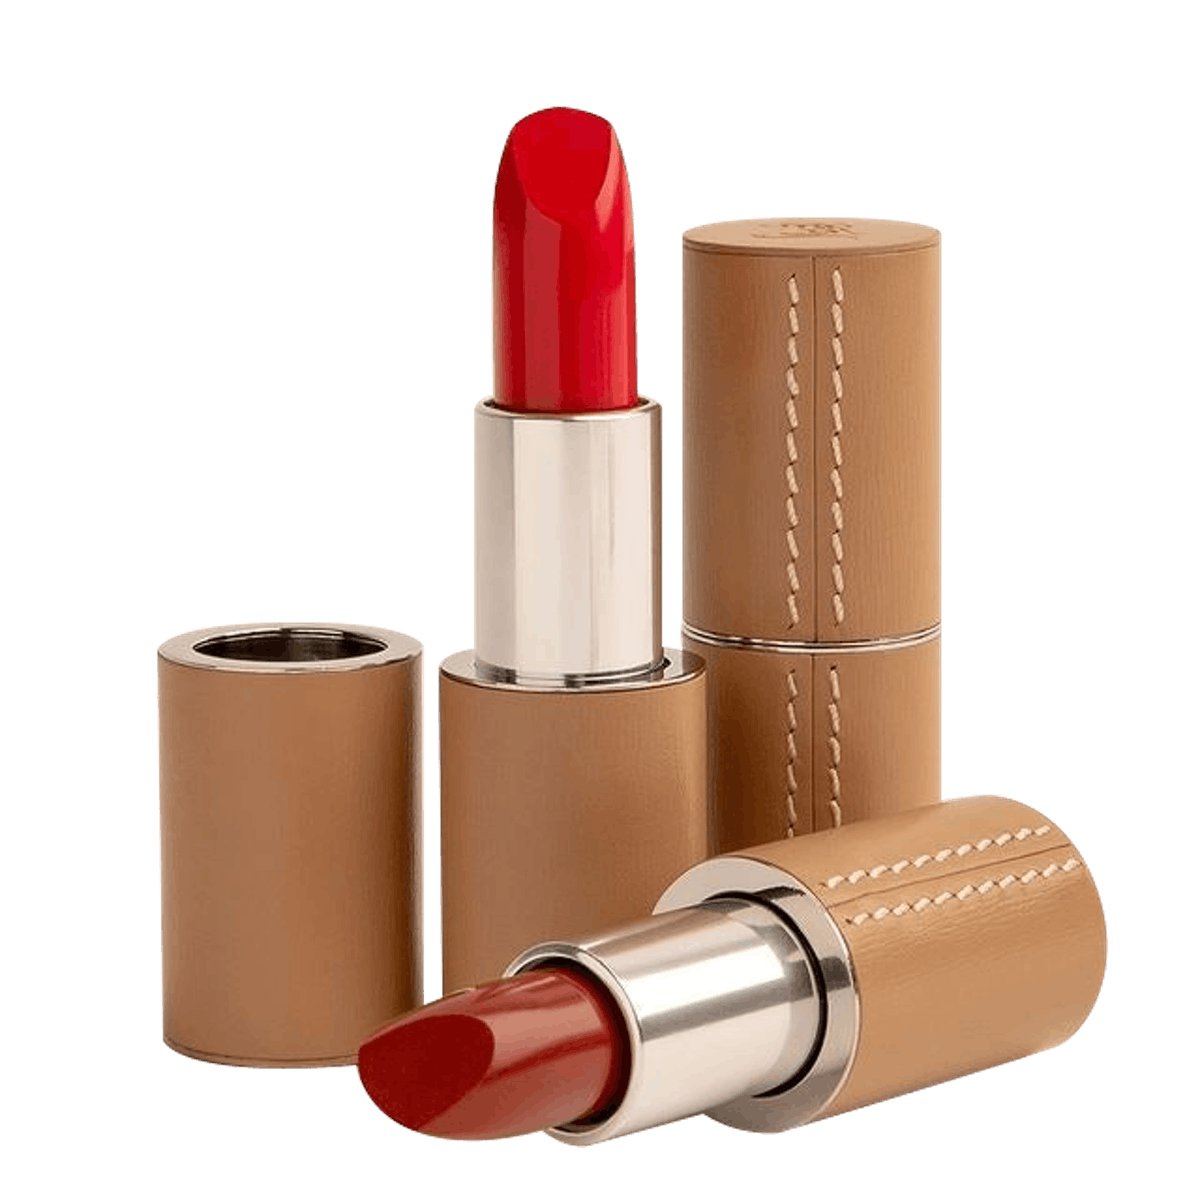 Refillable Pop Art Red Lipstick In Fine Camel Leather Case